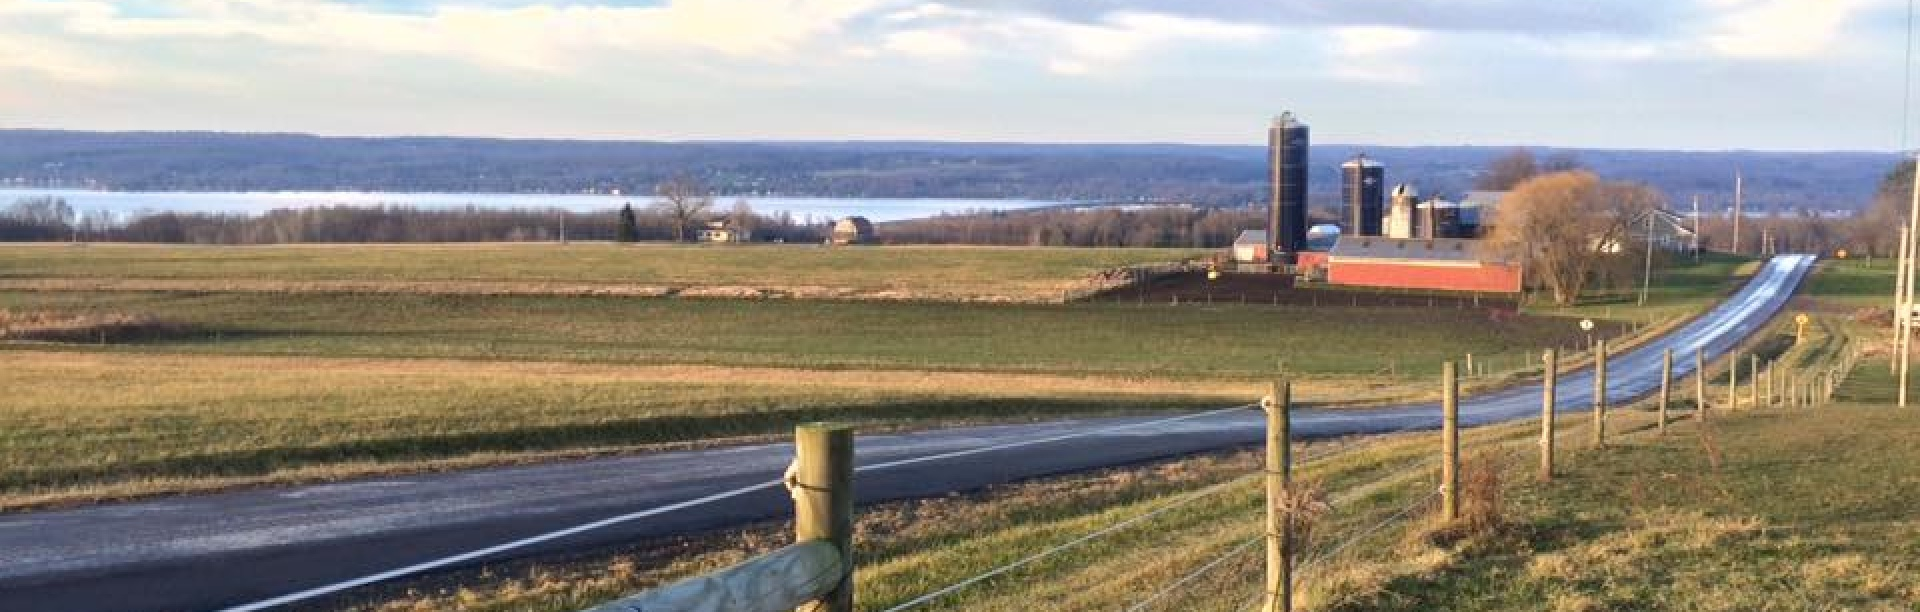 Farm land and barns in the horizon along a country road in Chautauqua county, New York.